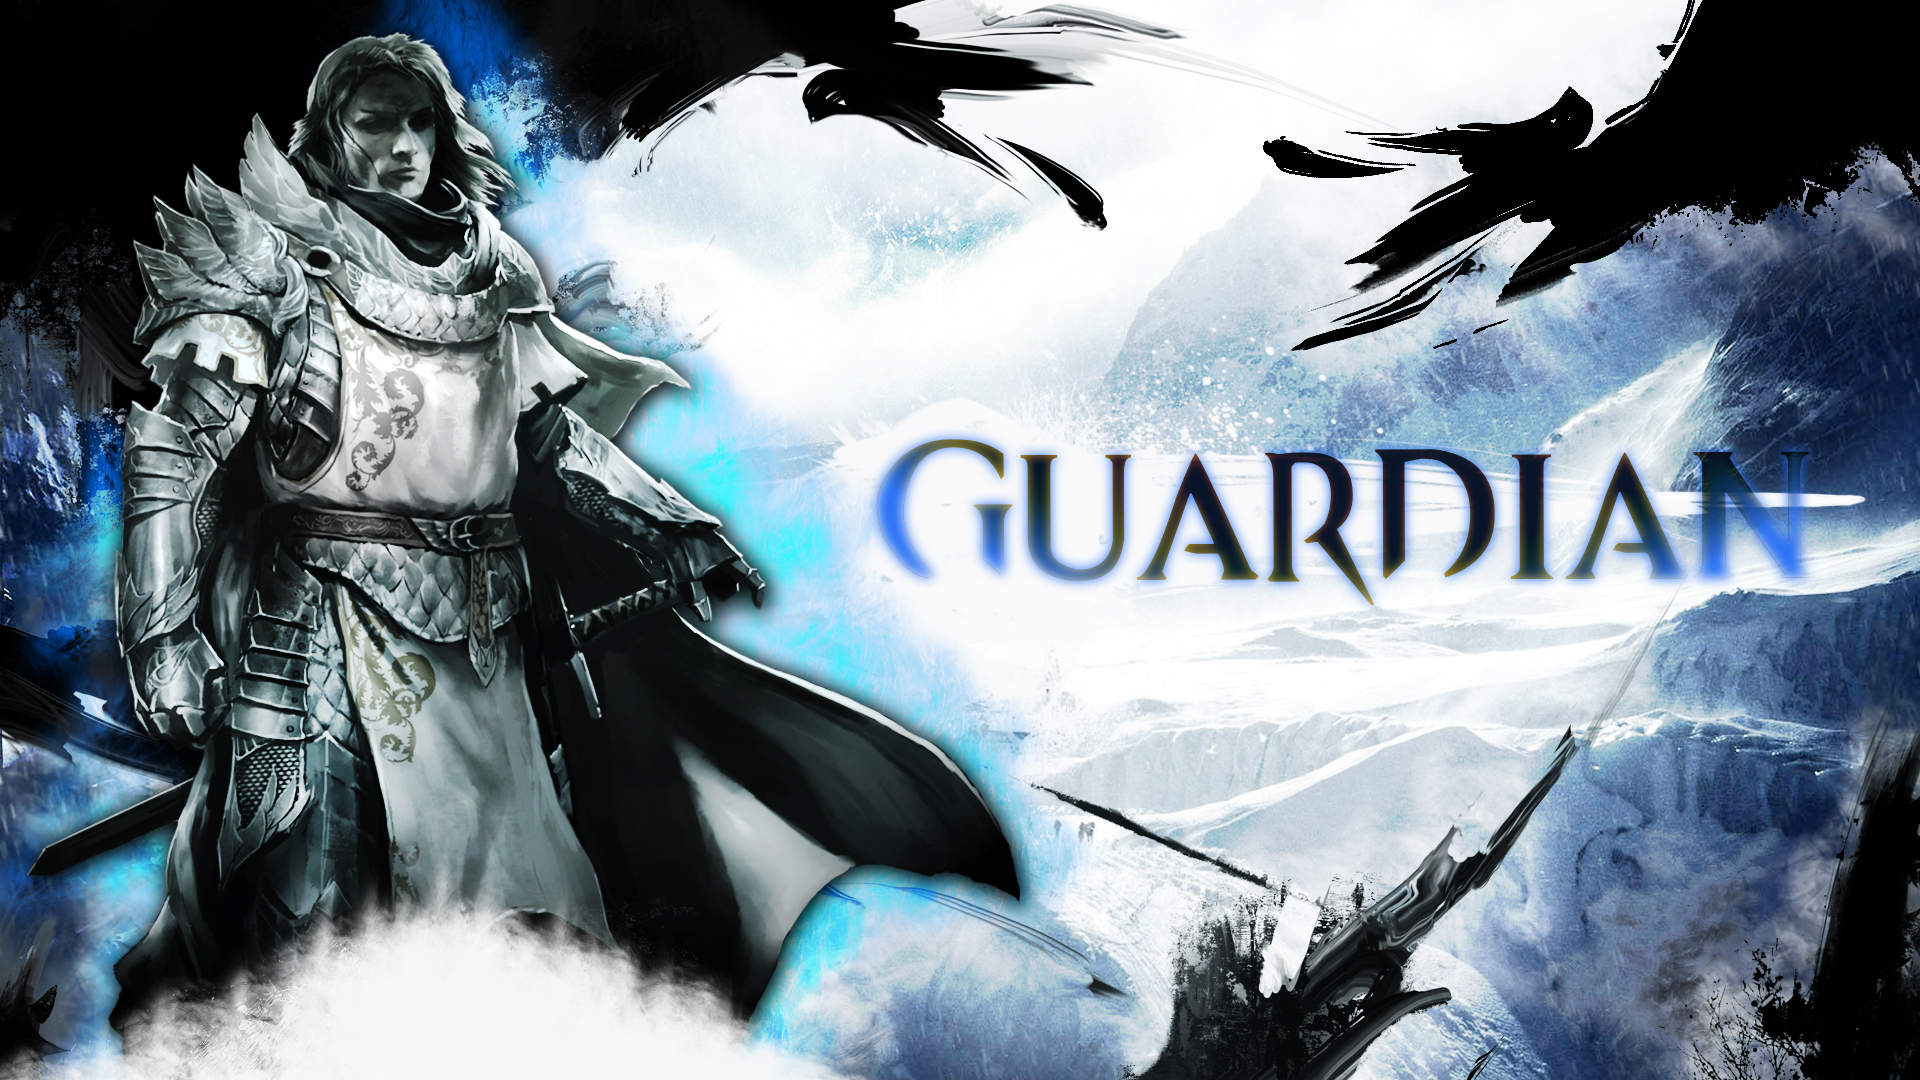 Guild Wars 2 Full Hd Wallpaper And Background Image: Guardian Full HD Wallpaper And Background